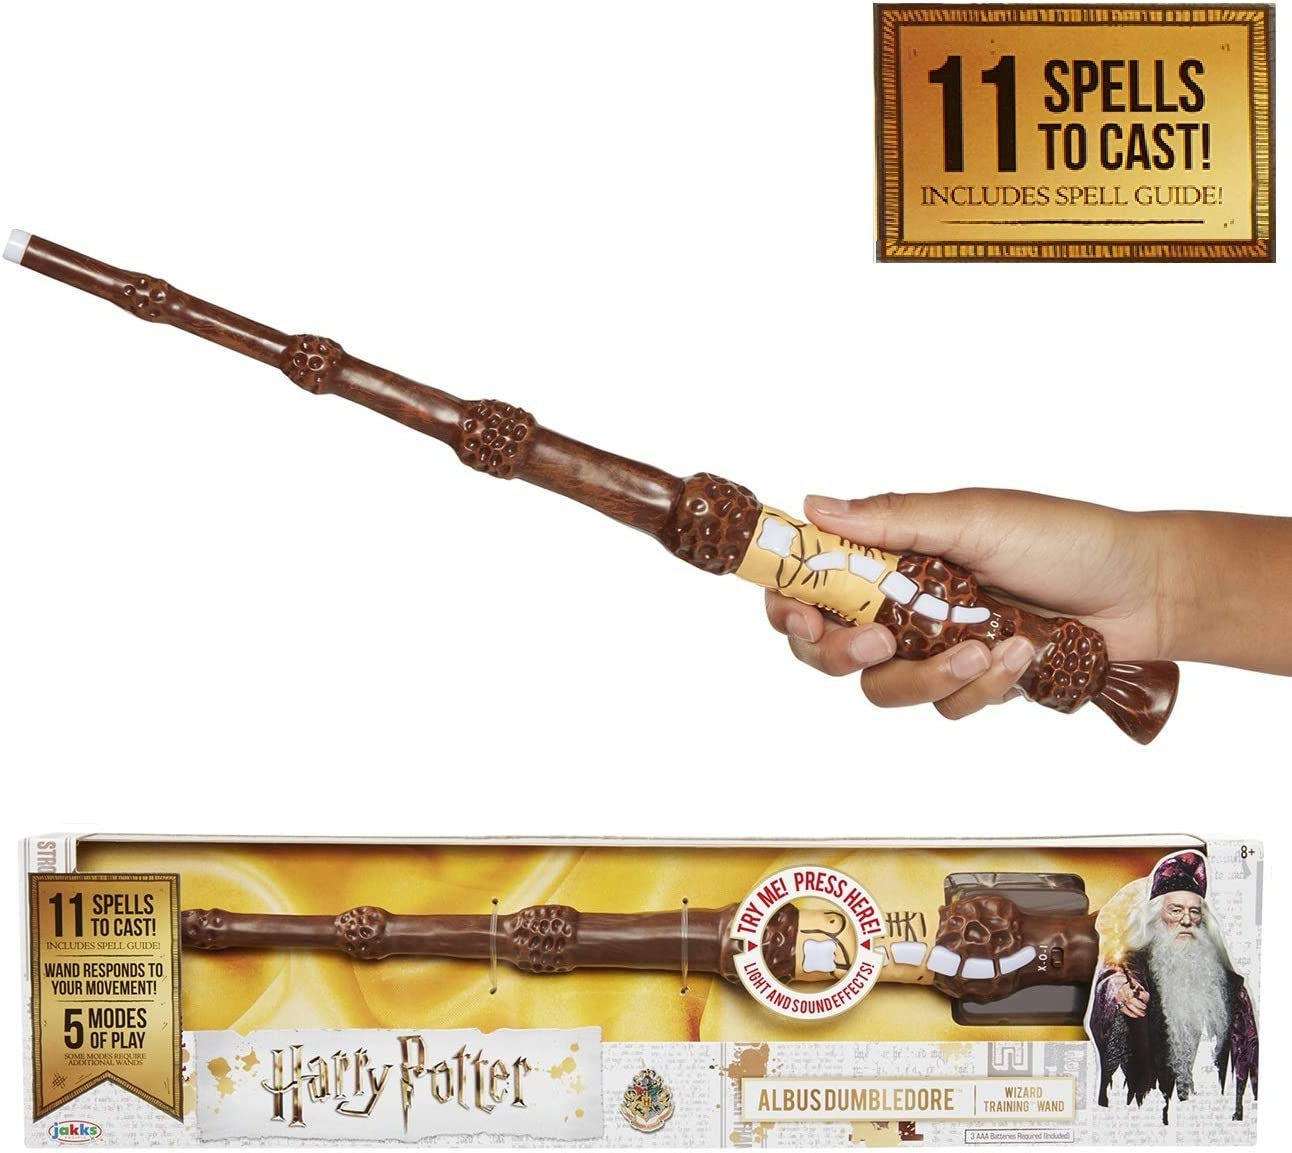 HARRY POTTER Varita Magica Con Hechizos Interactive Wizard Wand Exclusive Wave Dumbledore 38 cm, multicolor, Talla única (Elbenwald 73212) , color/modelo surtido